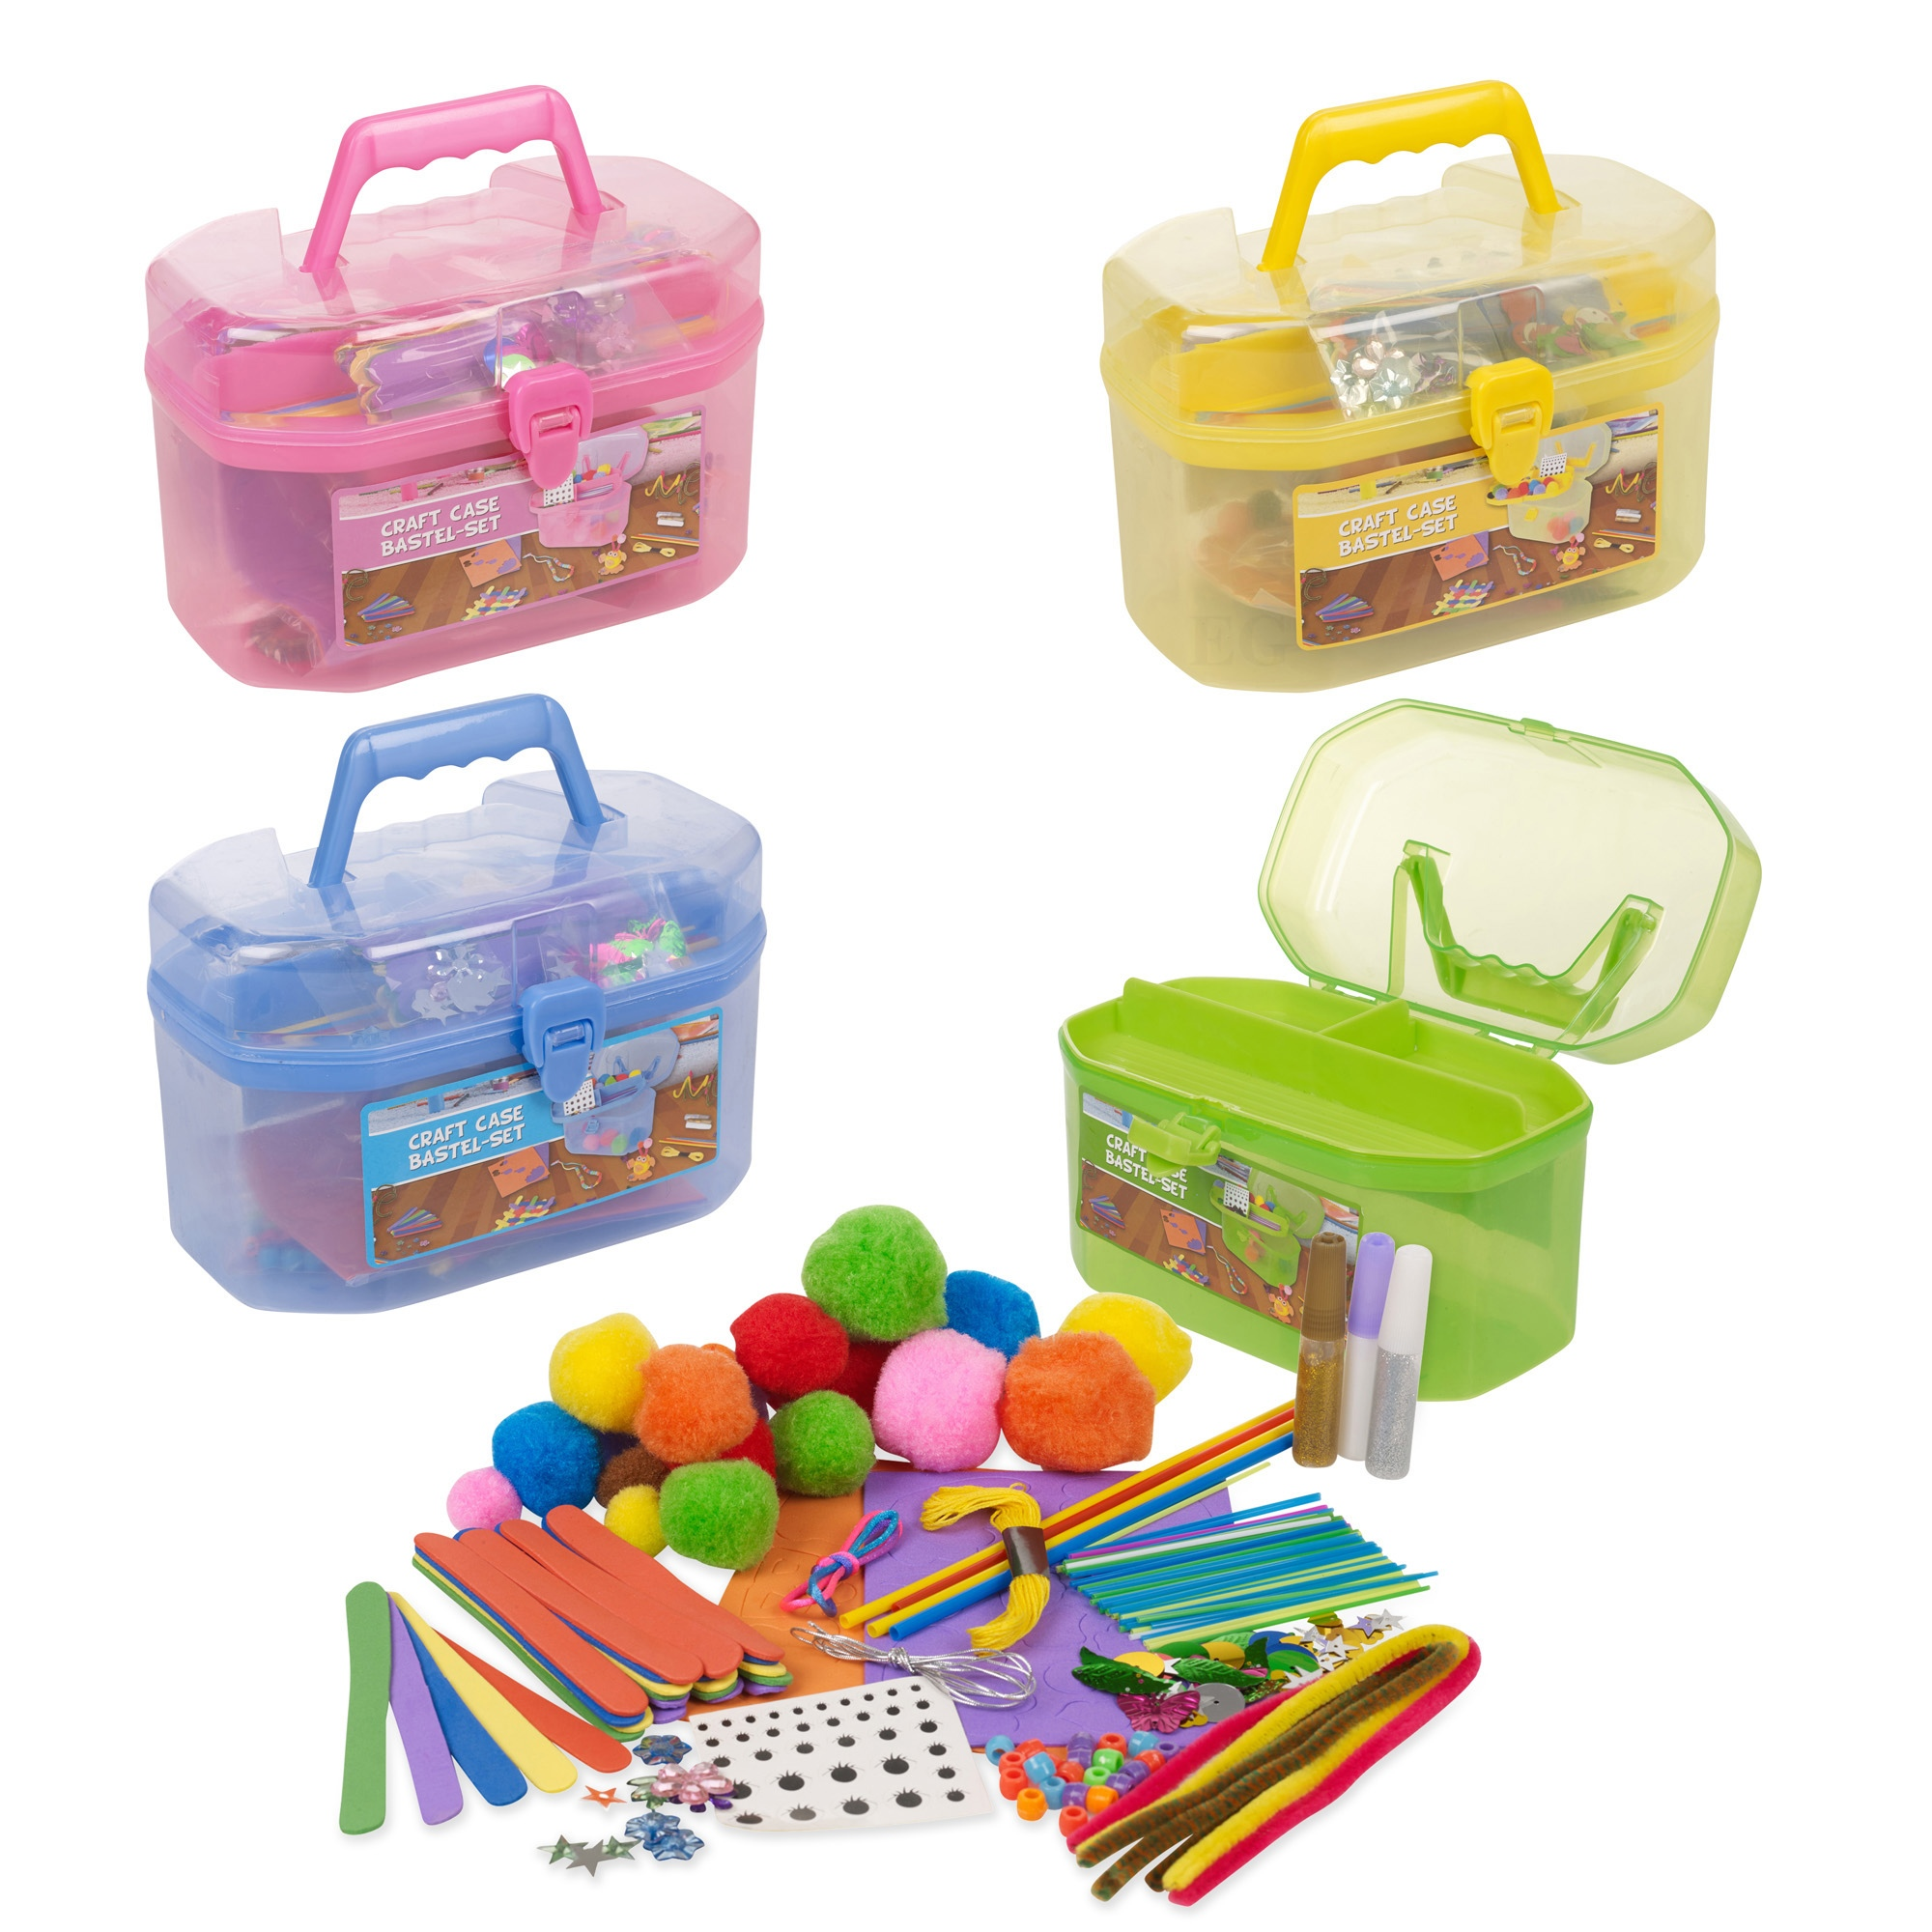 127 piece children 39 s arts craft set case carry handle for Arts and crafts sets for kids